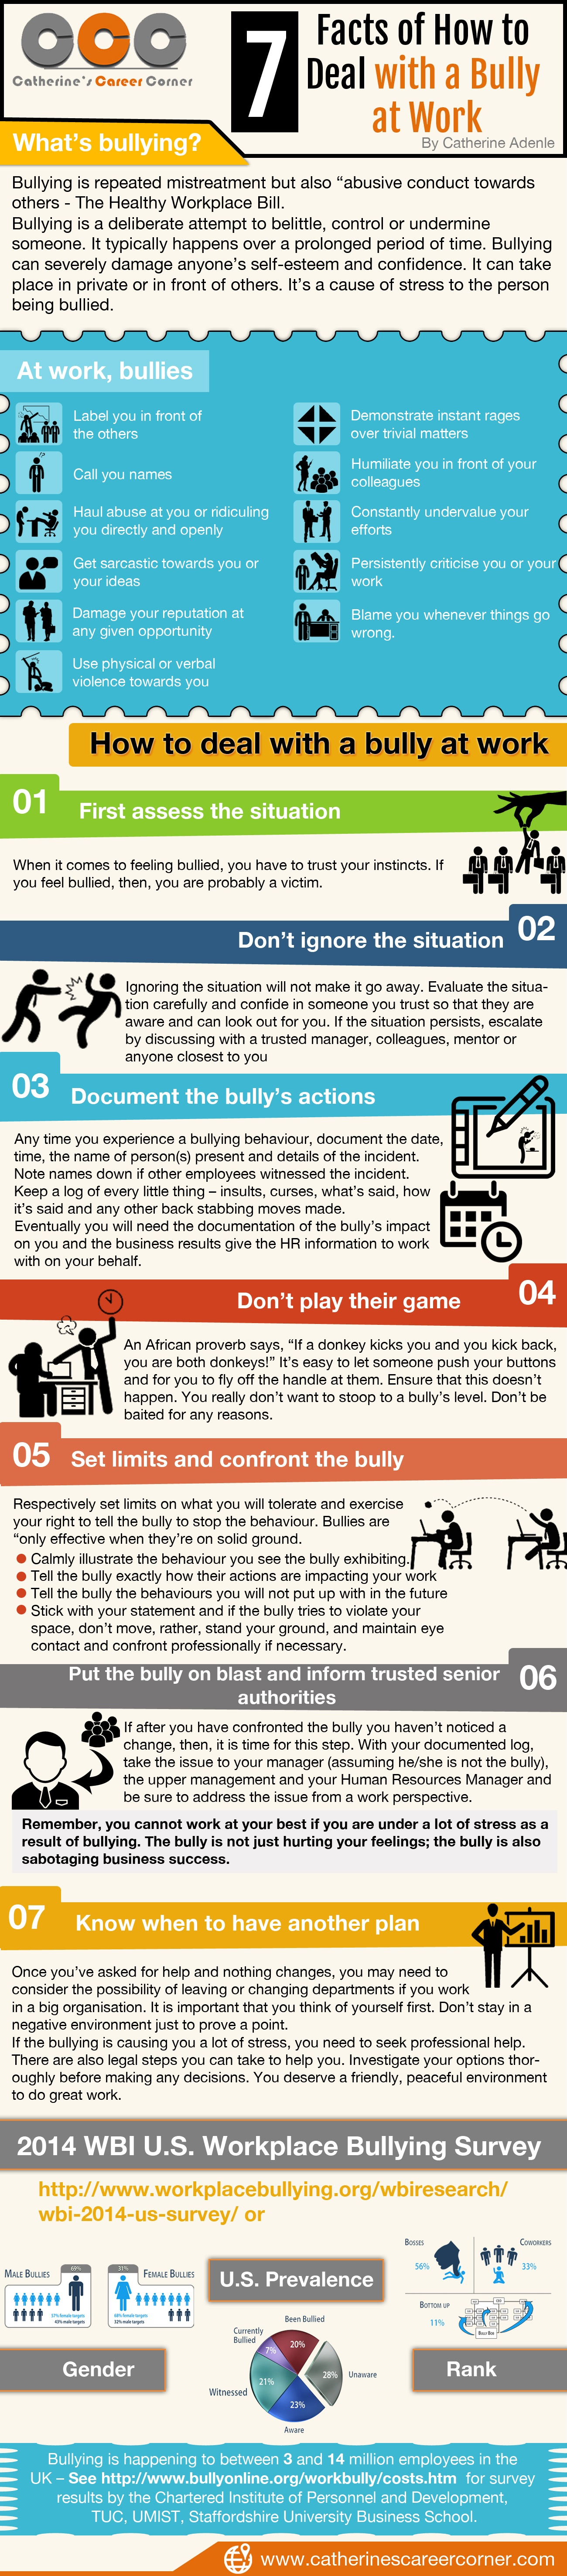 Tips on How to Deal with a Bully at Work - Infographic